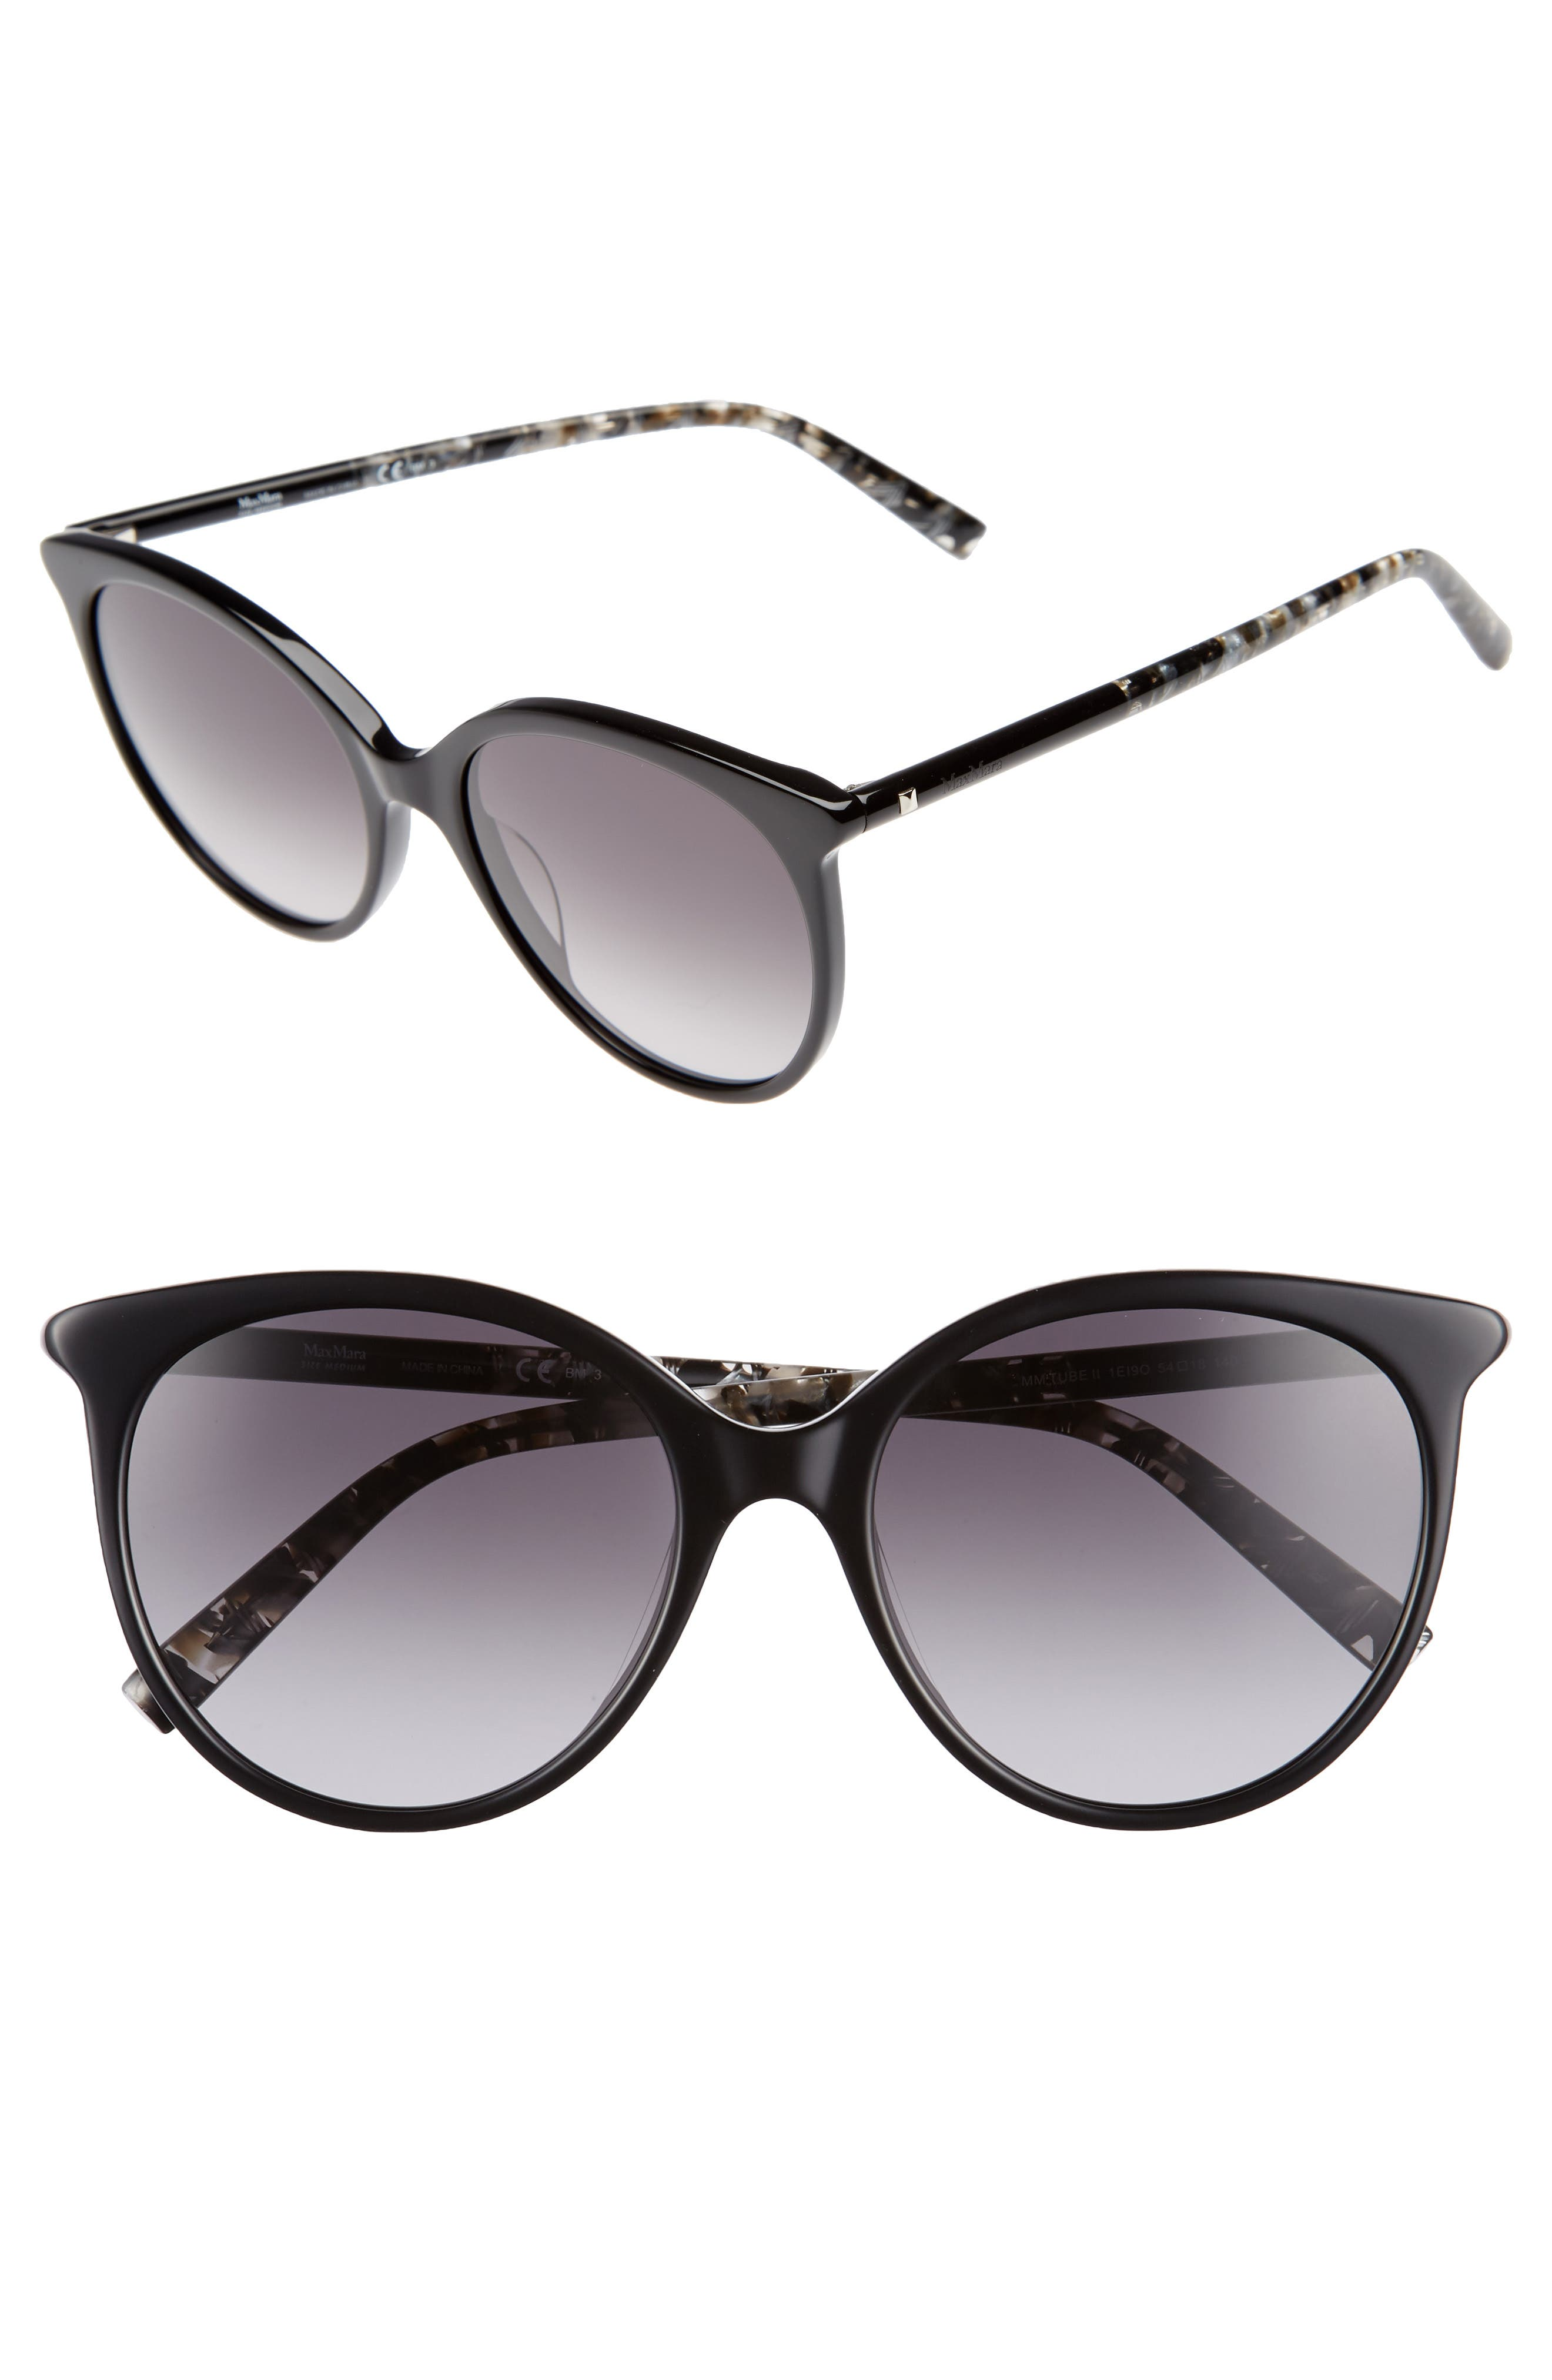 21a2be05f28f Max Mara Sunglasses for Women | Nordstrom